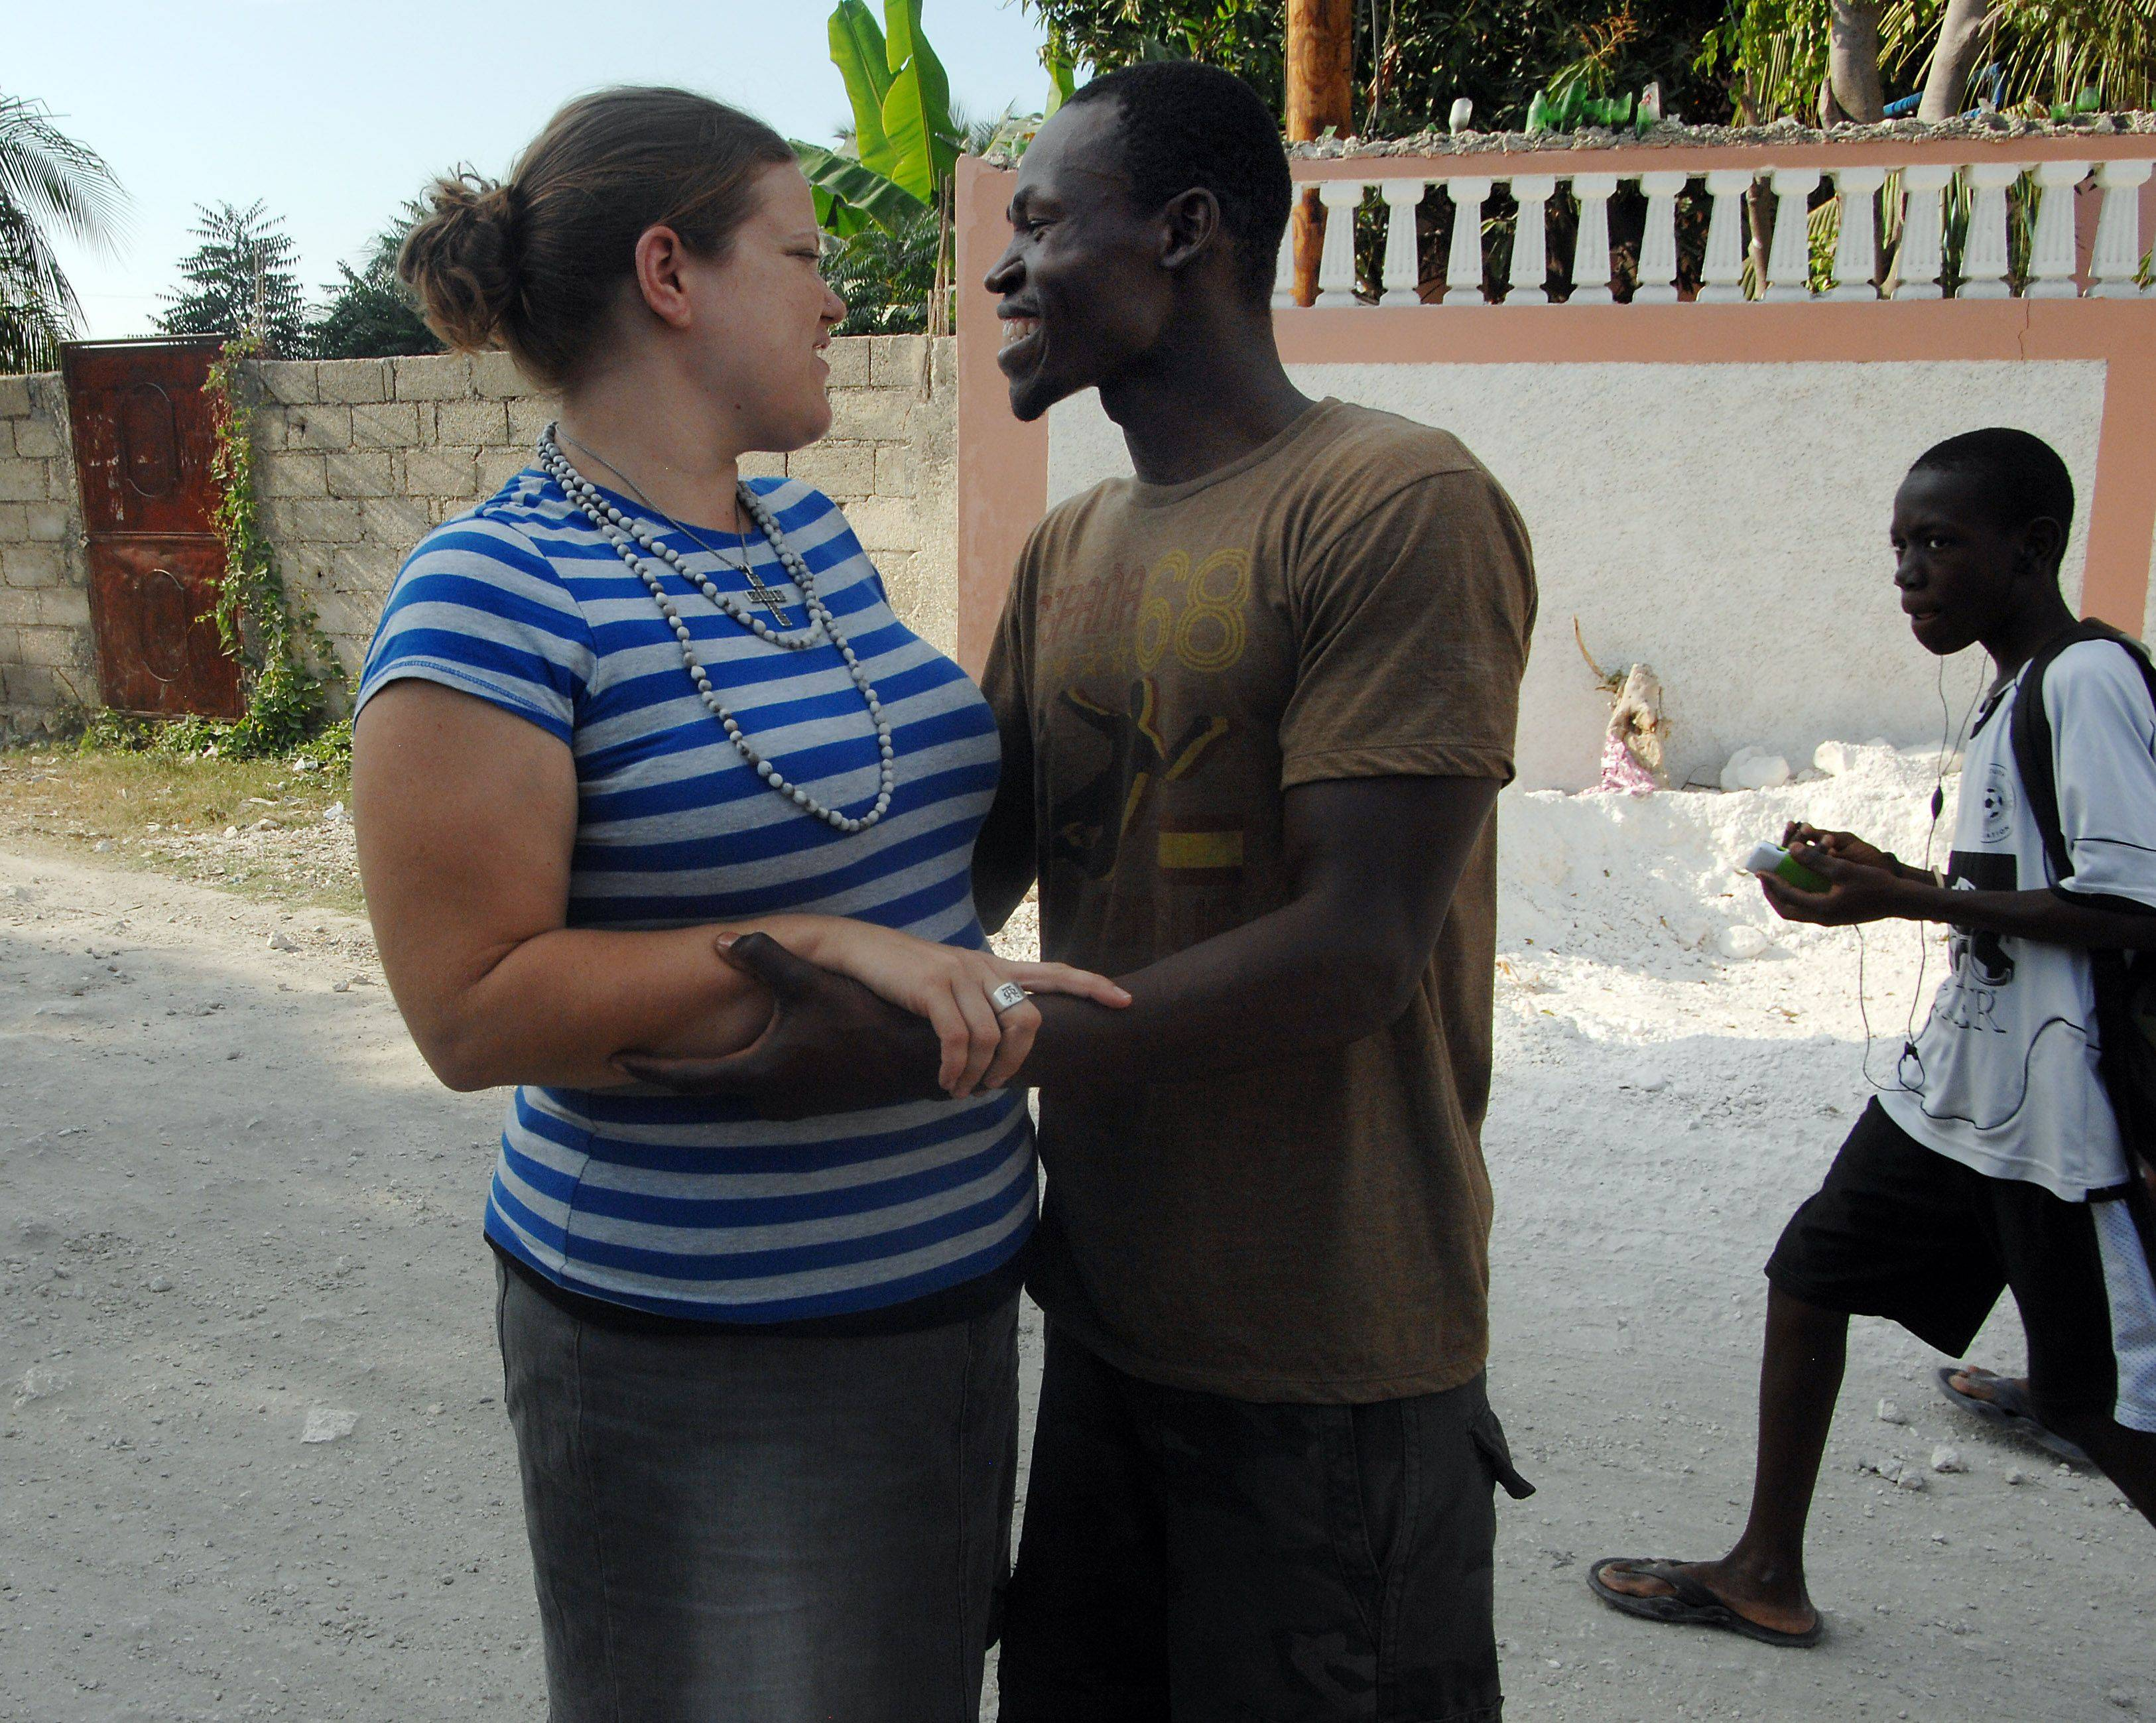 Lionel Legoute, formerly of Palatine, and his fiancee Rachel Ehrhard of Oak Park share a moment in Port-au-Prince on Tuesday. The two met in Chicago at Concordia University and do mission work together. Lionel stayed with the Steve and Janice Schorter family of Palatine while he was in school.